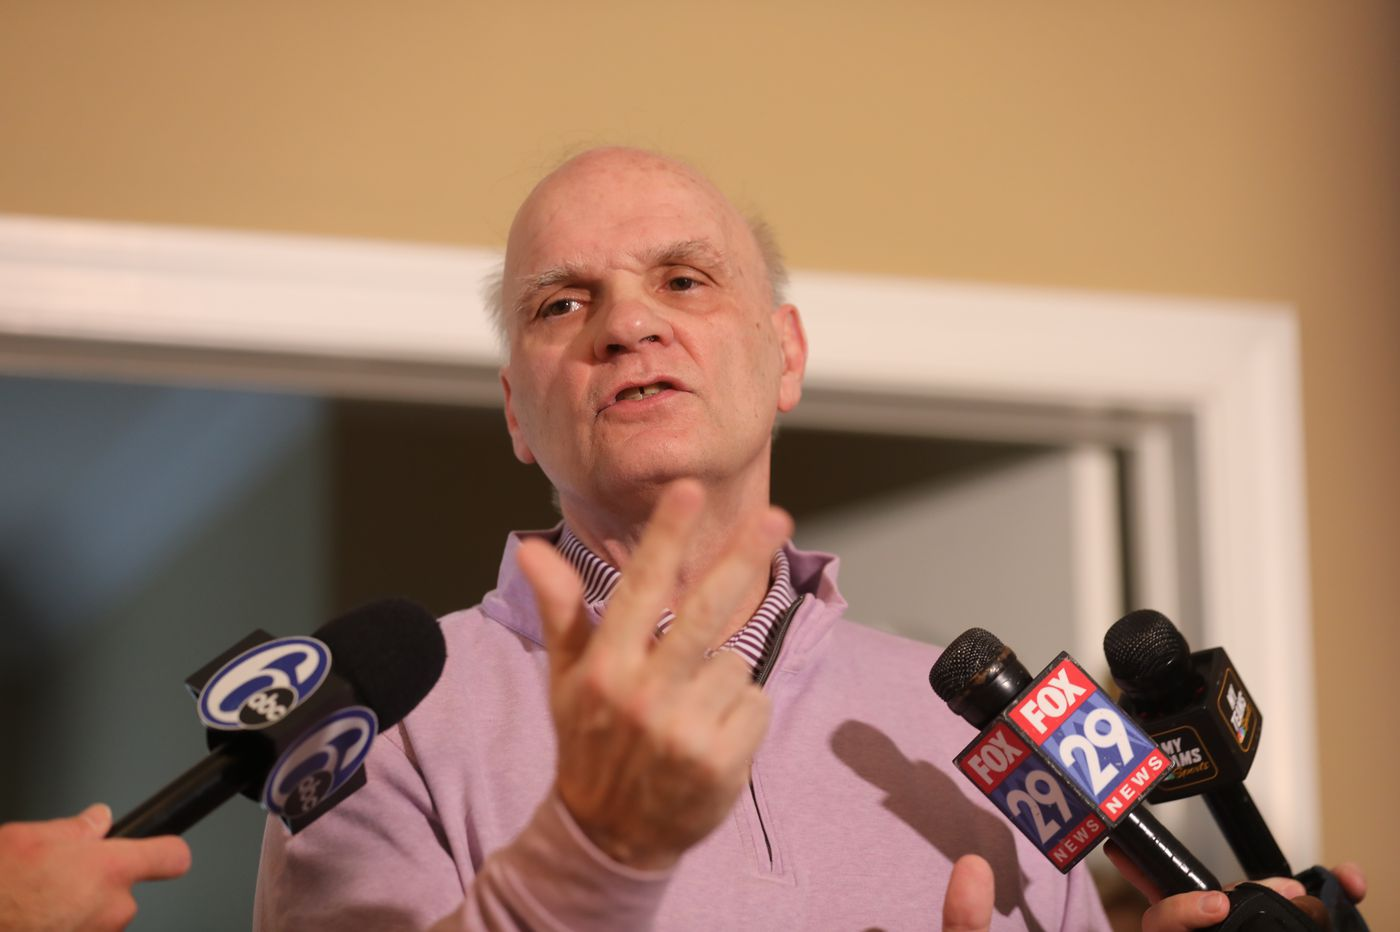 Ex-St. Joe's coach Phil Martelli has offer to become Michigan assistant under Juwan Howard